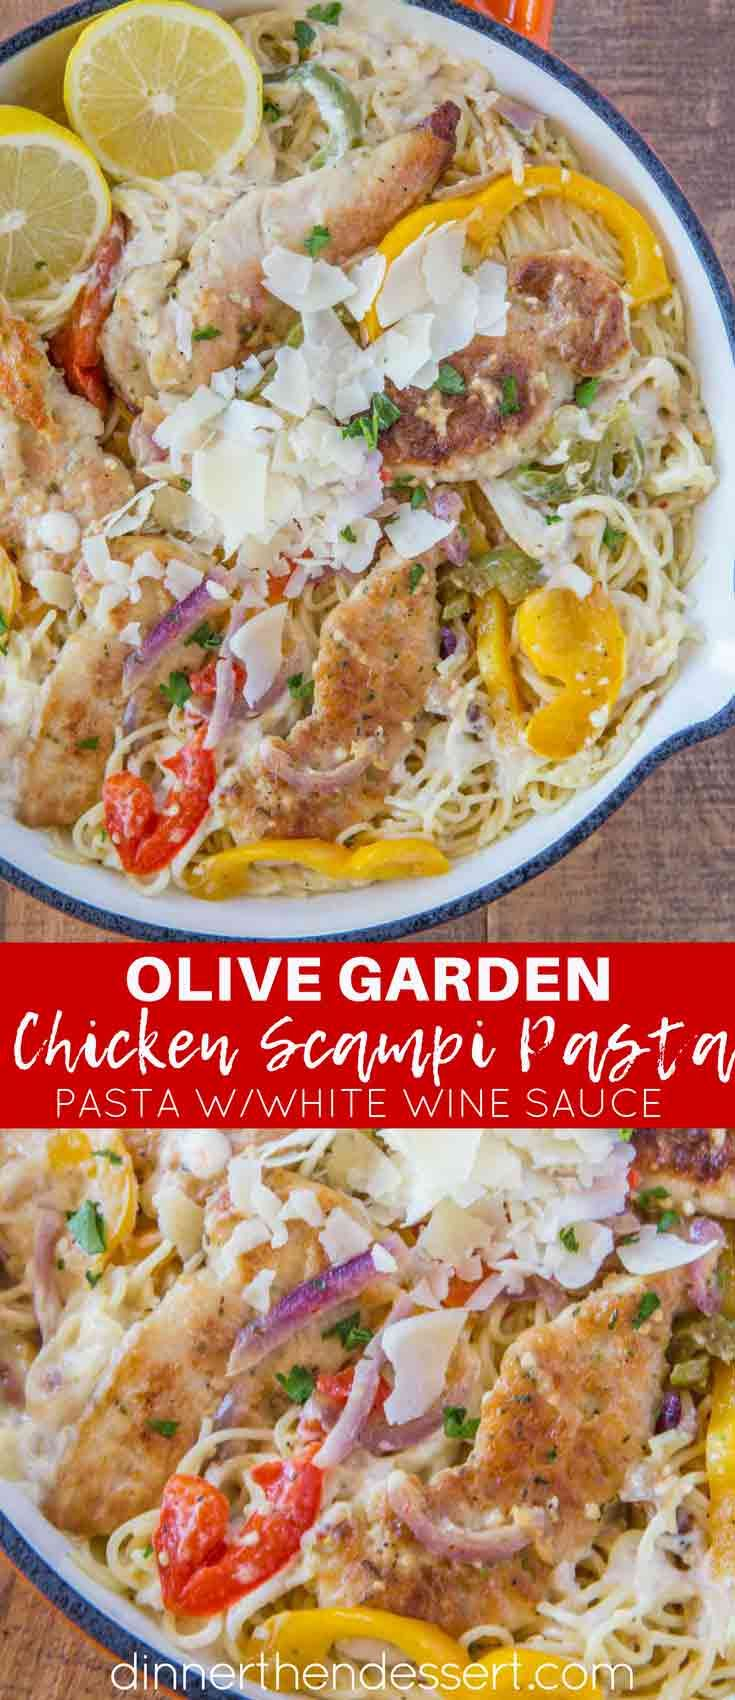 Olive Garden Chicken Scampi Pasta Copycat Made With A Creamy Garlic White Wine Sauce With Lemon Bell Peppers Chicken Scampi Chicken Scampi Recipe Scampi Pasta